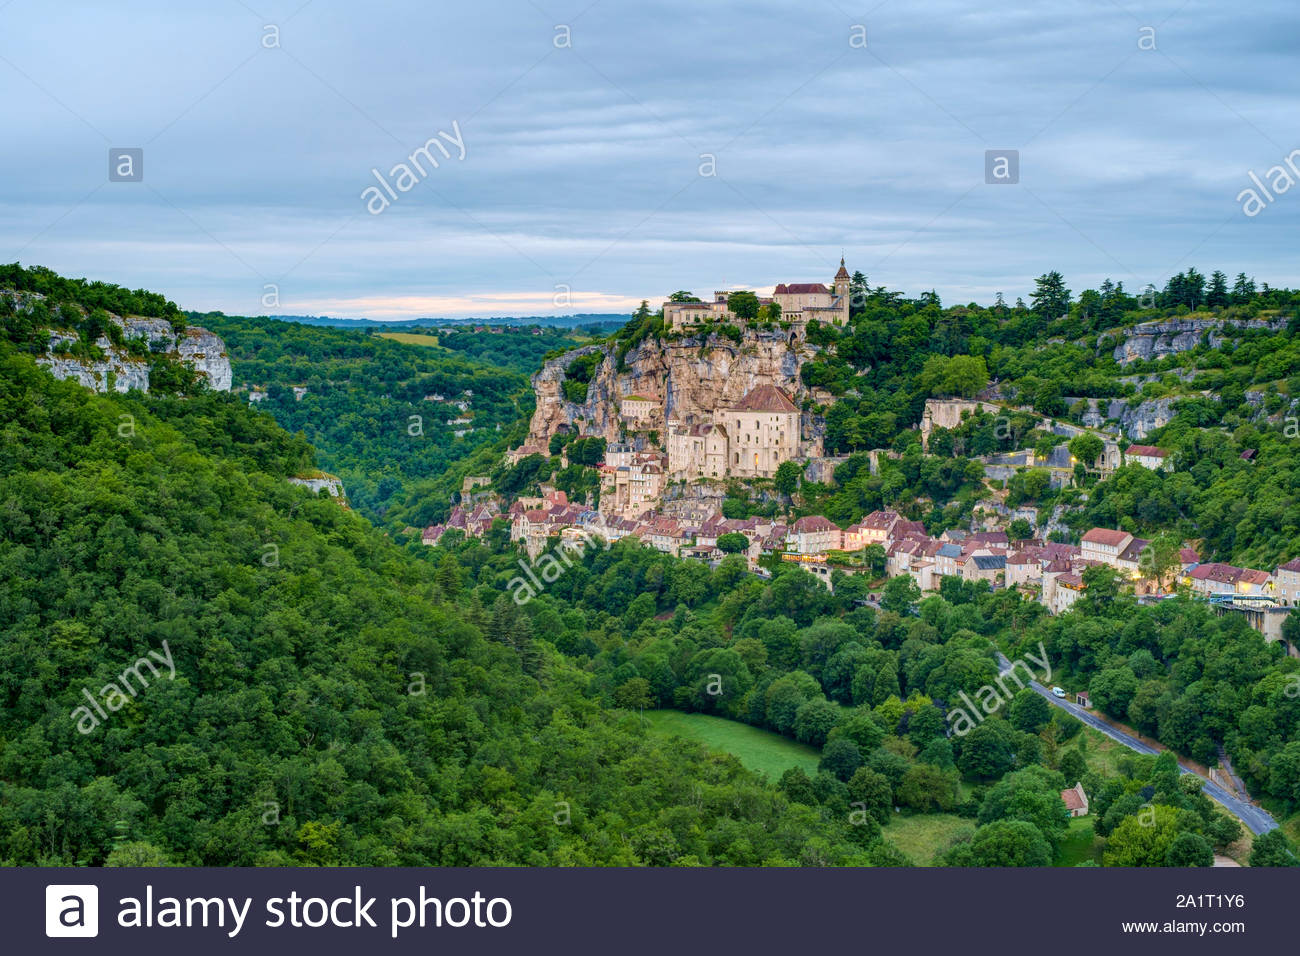 Rocamadour, pilgrimage town along El Camino de Santiago, Lot Department, Midi-Pyrénées, France Stock Photo